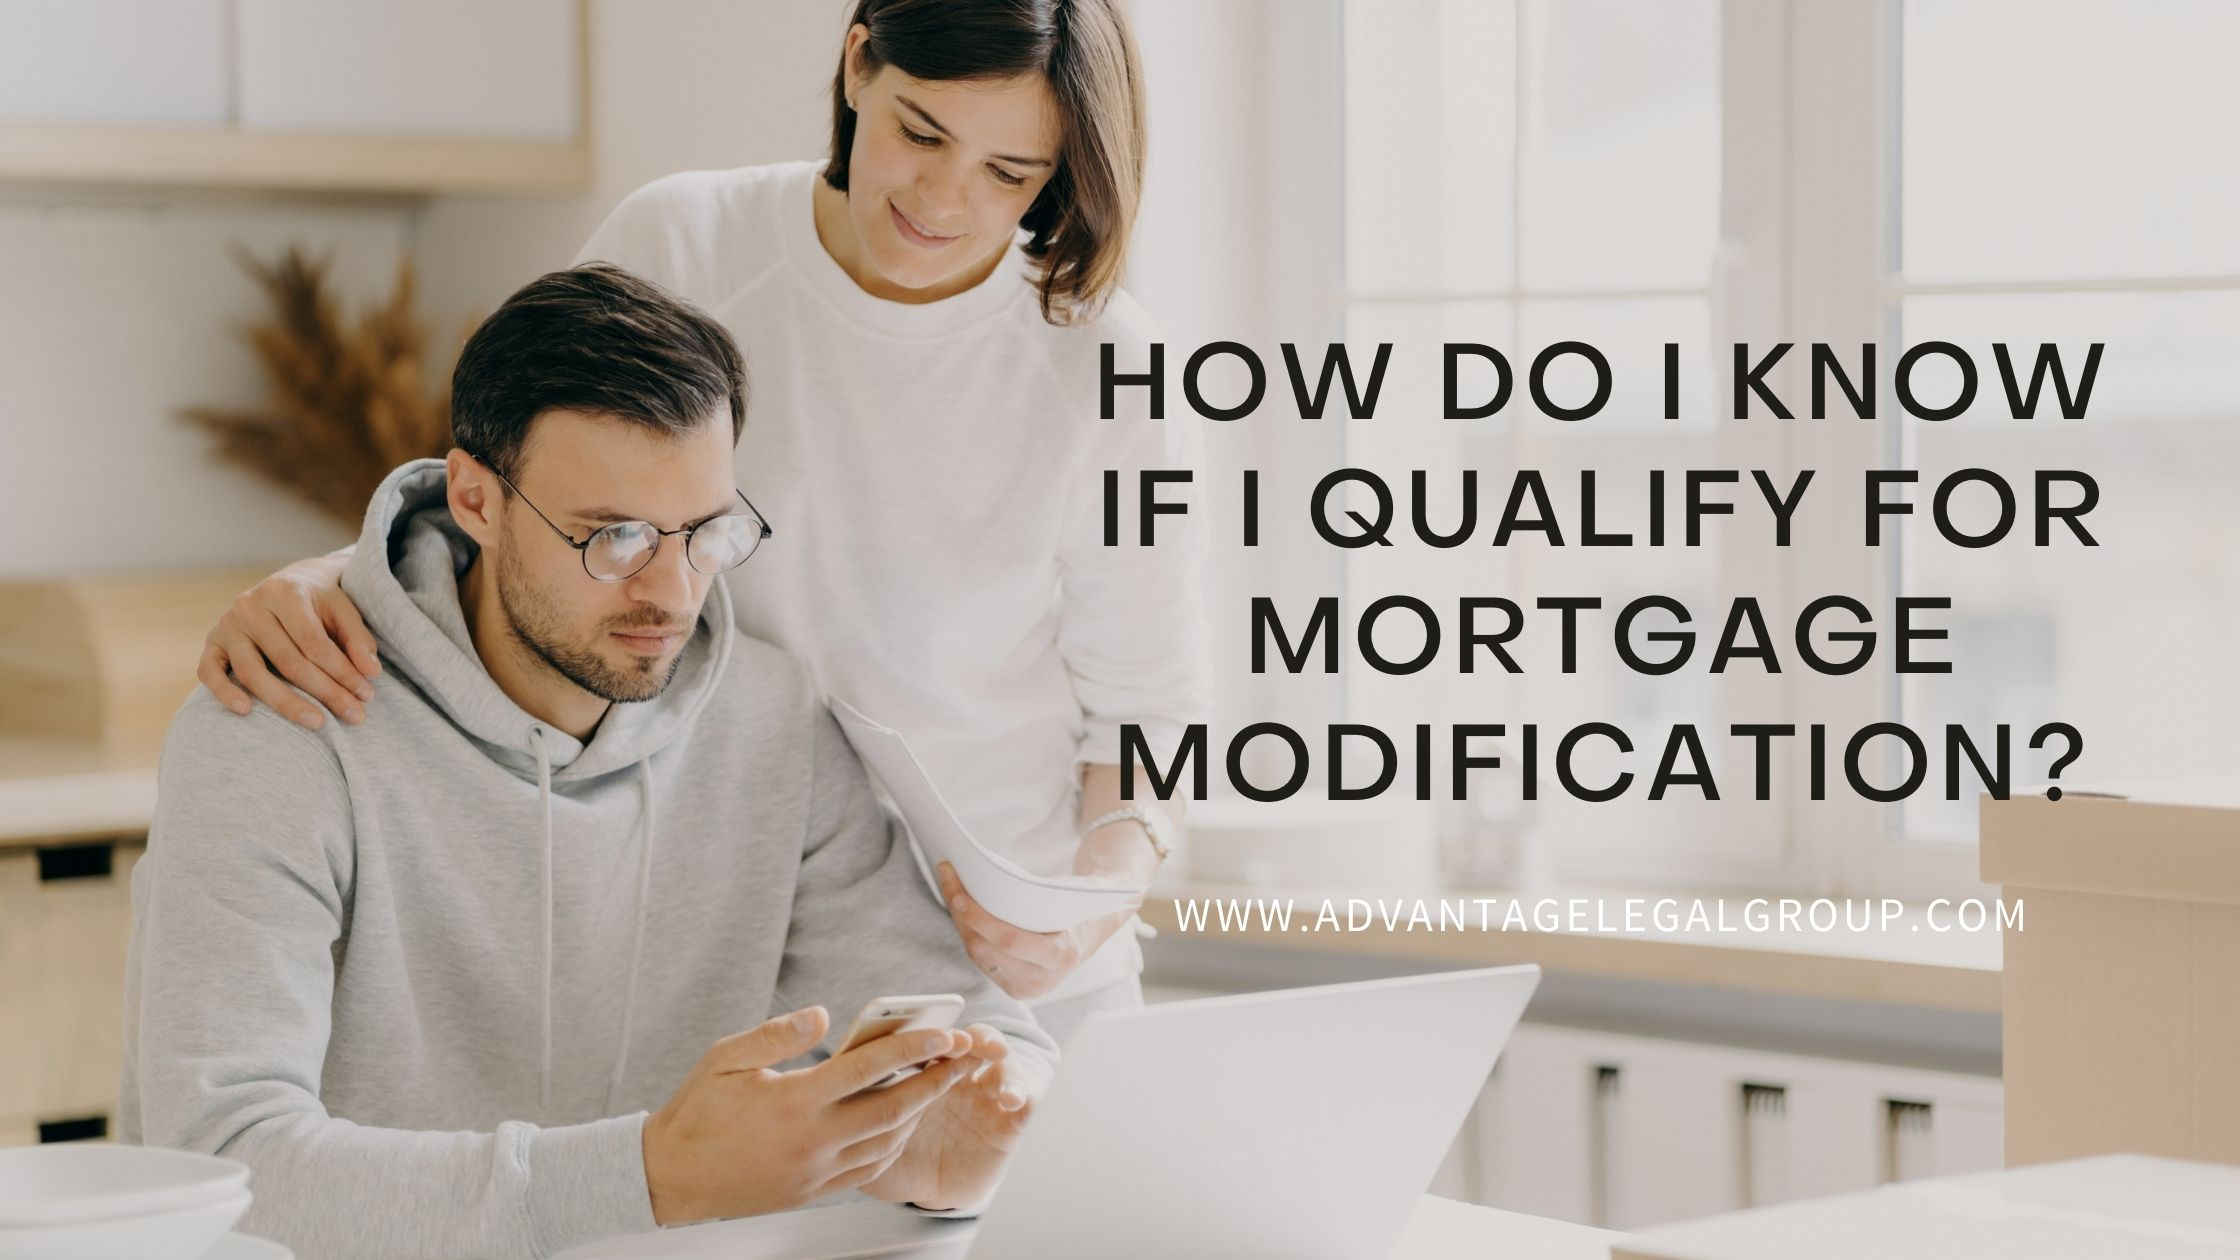 How Do I Know if I Qualify for Mortgage Modification?